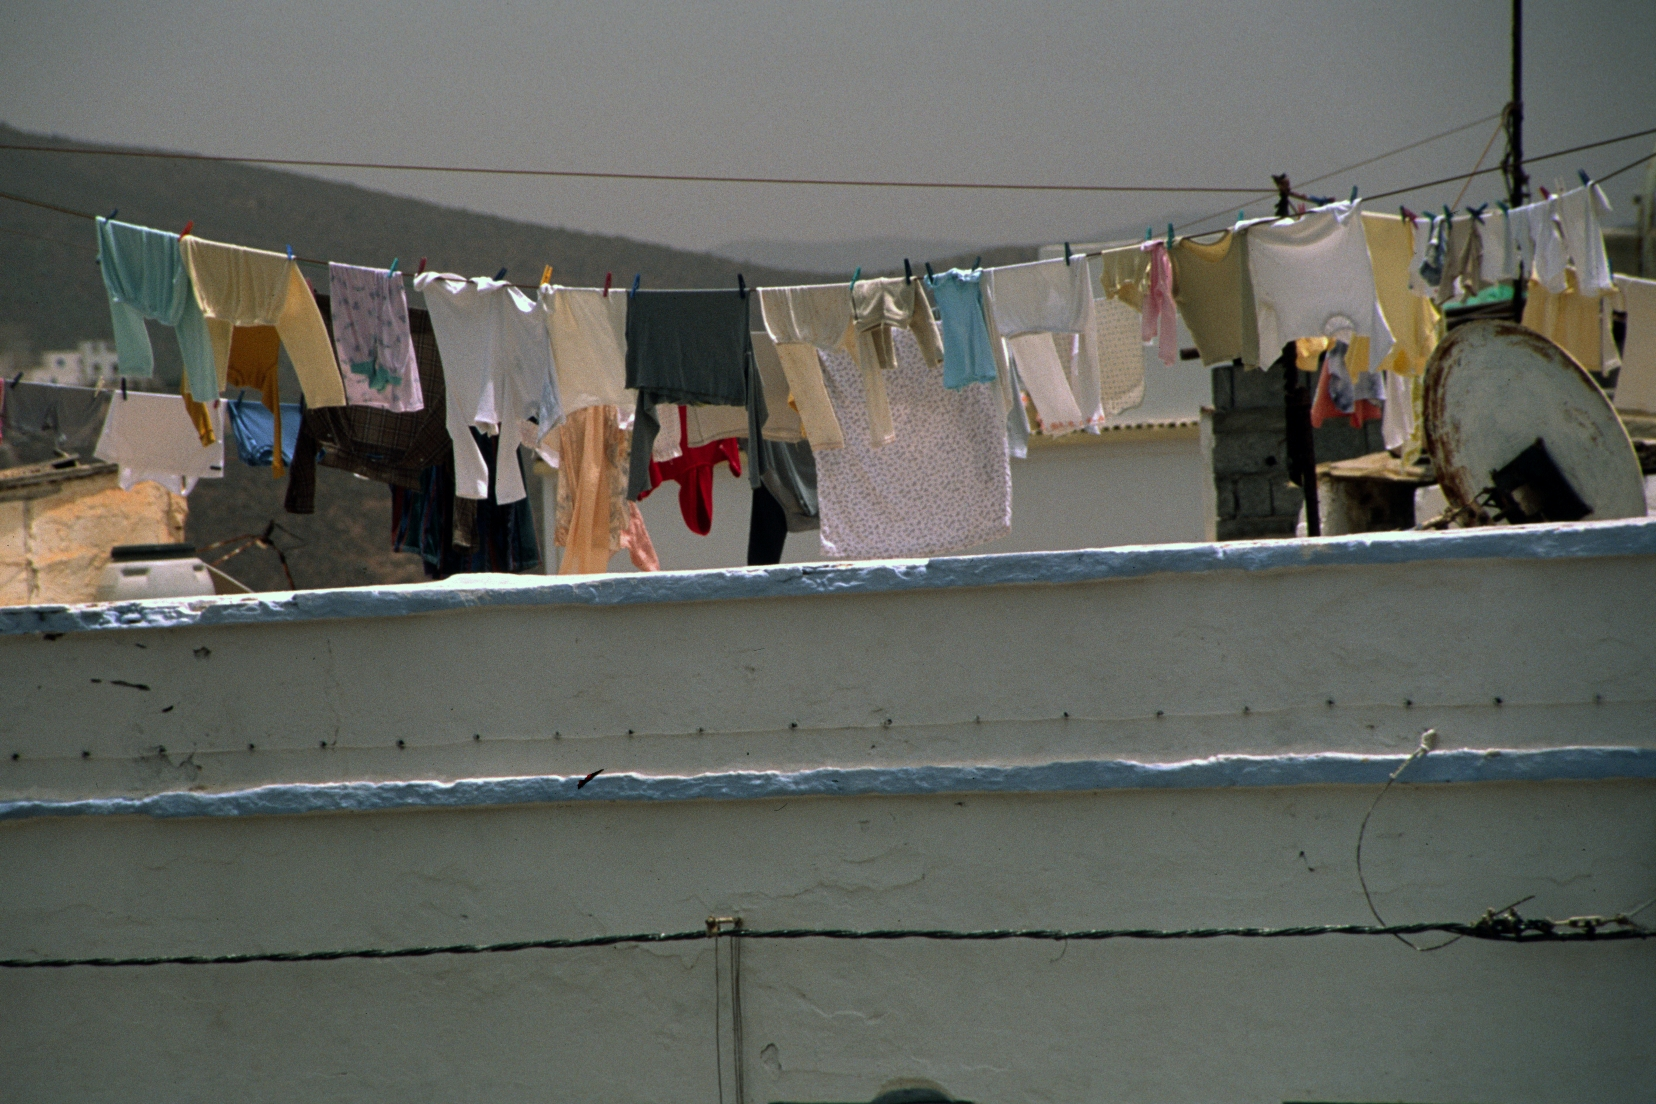 Clothes drying on the line in Sidi Ifni